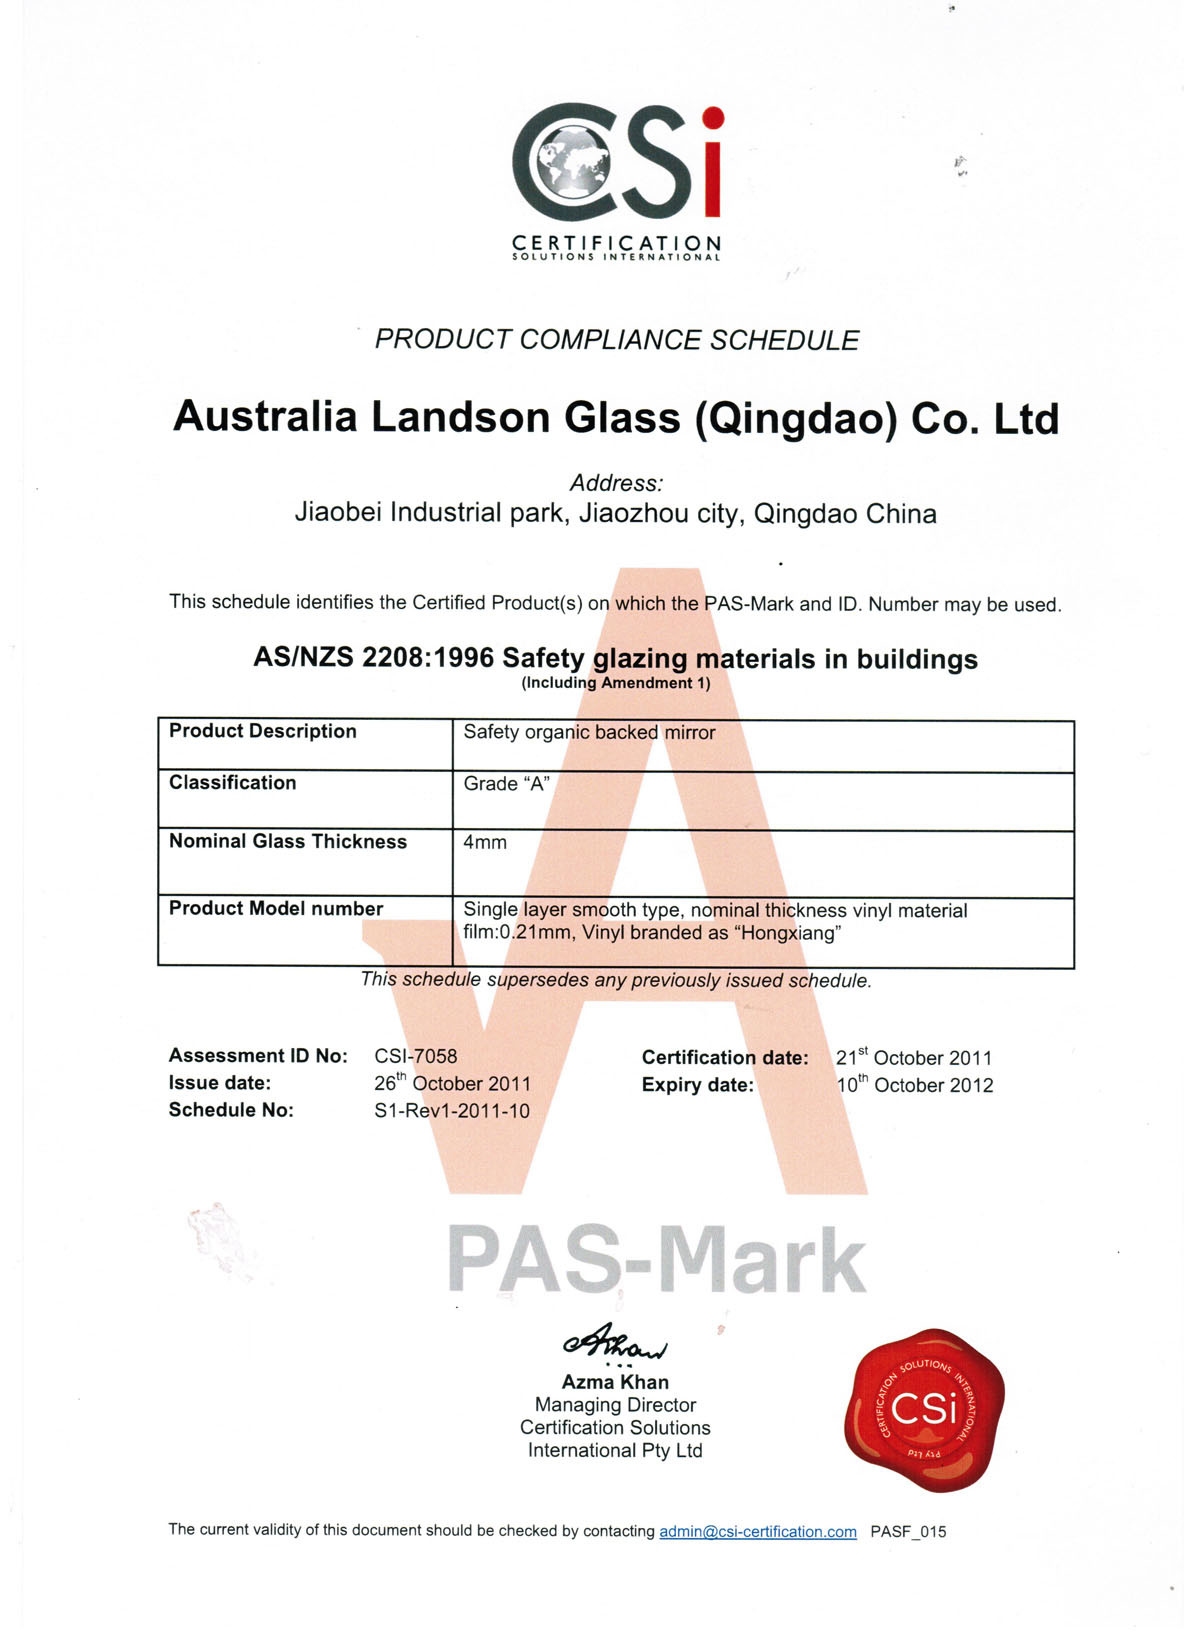 China Safety Mirror Csi Certification Asnzs 2208 1996 China